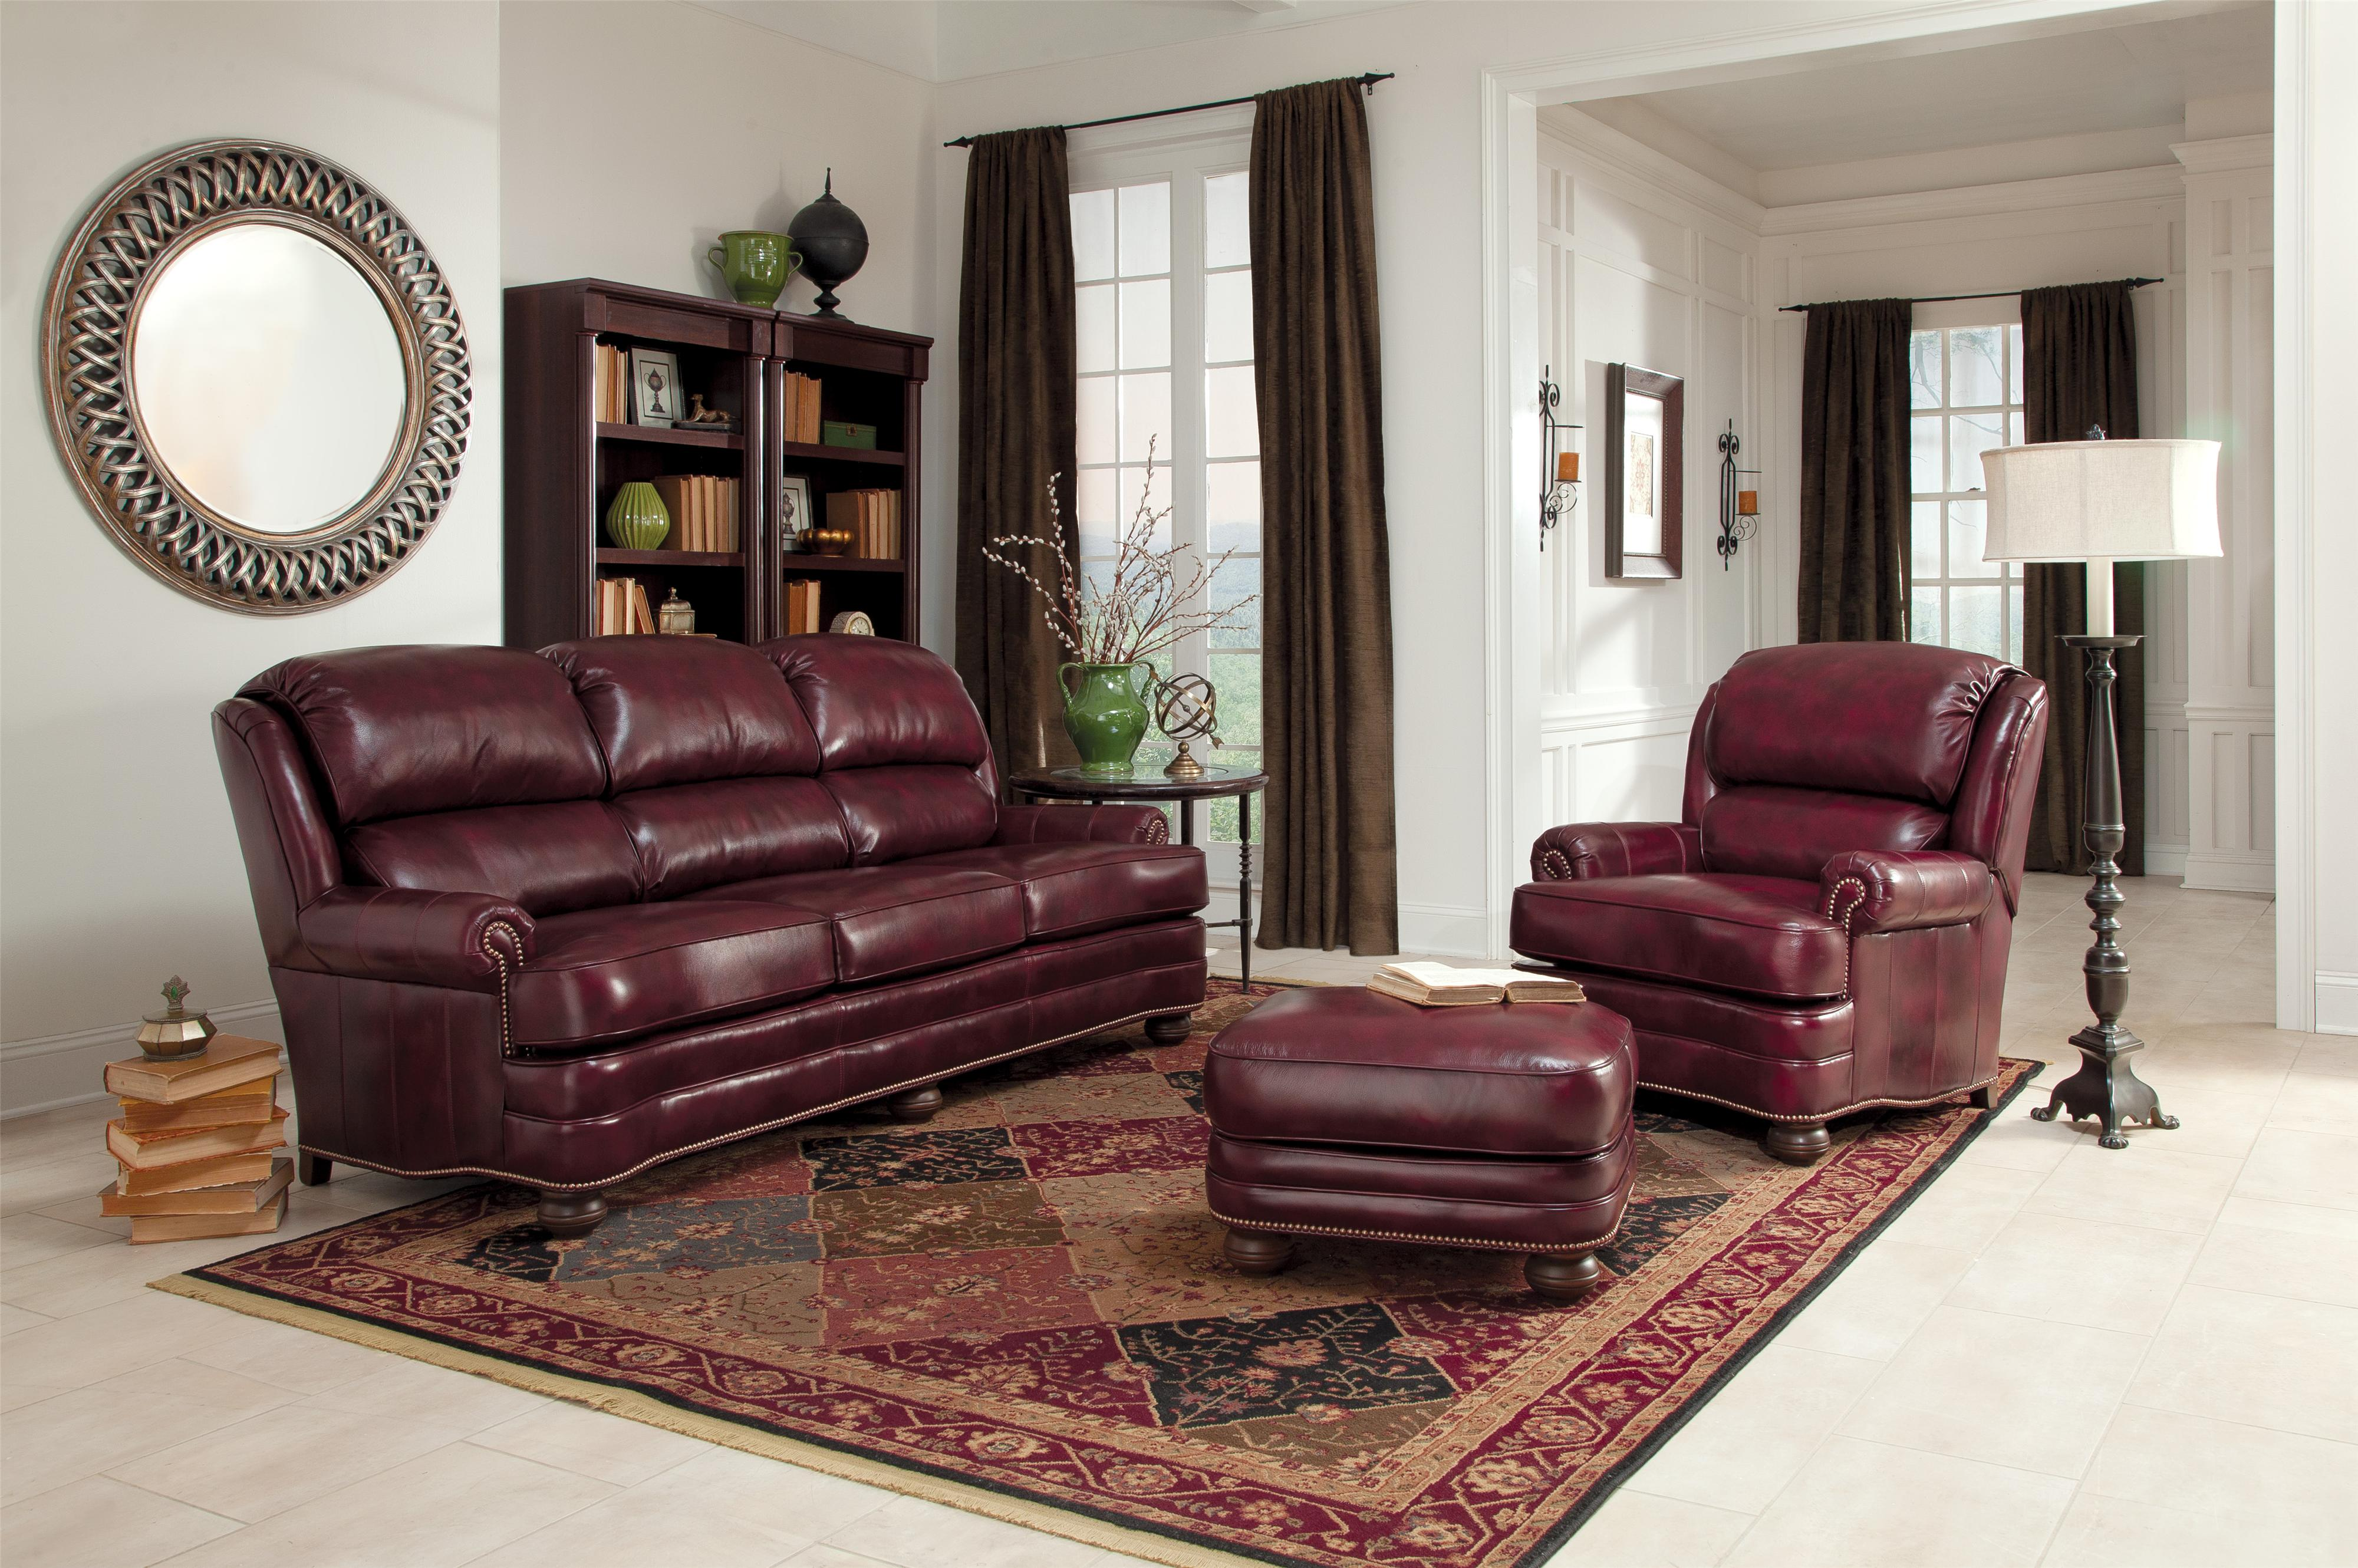 Upholstered Leather Chair By Smith Brothers Wolf Furniture